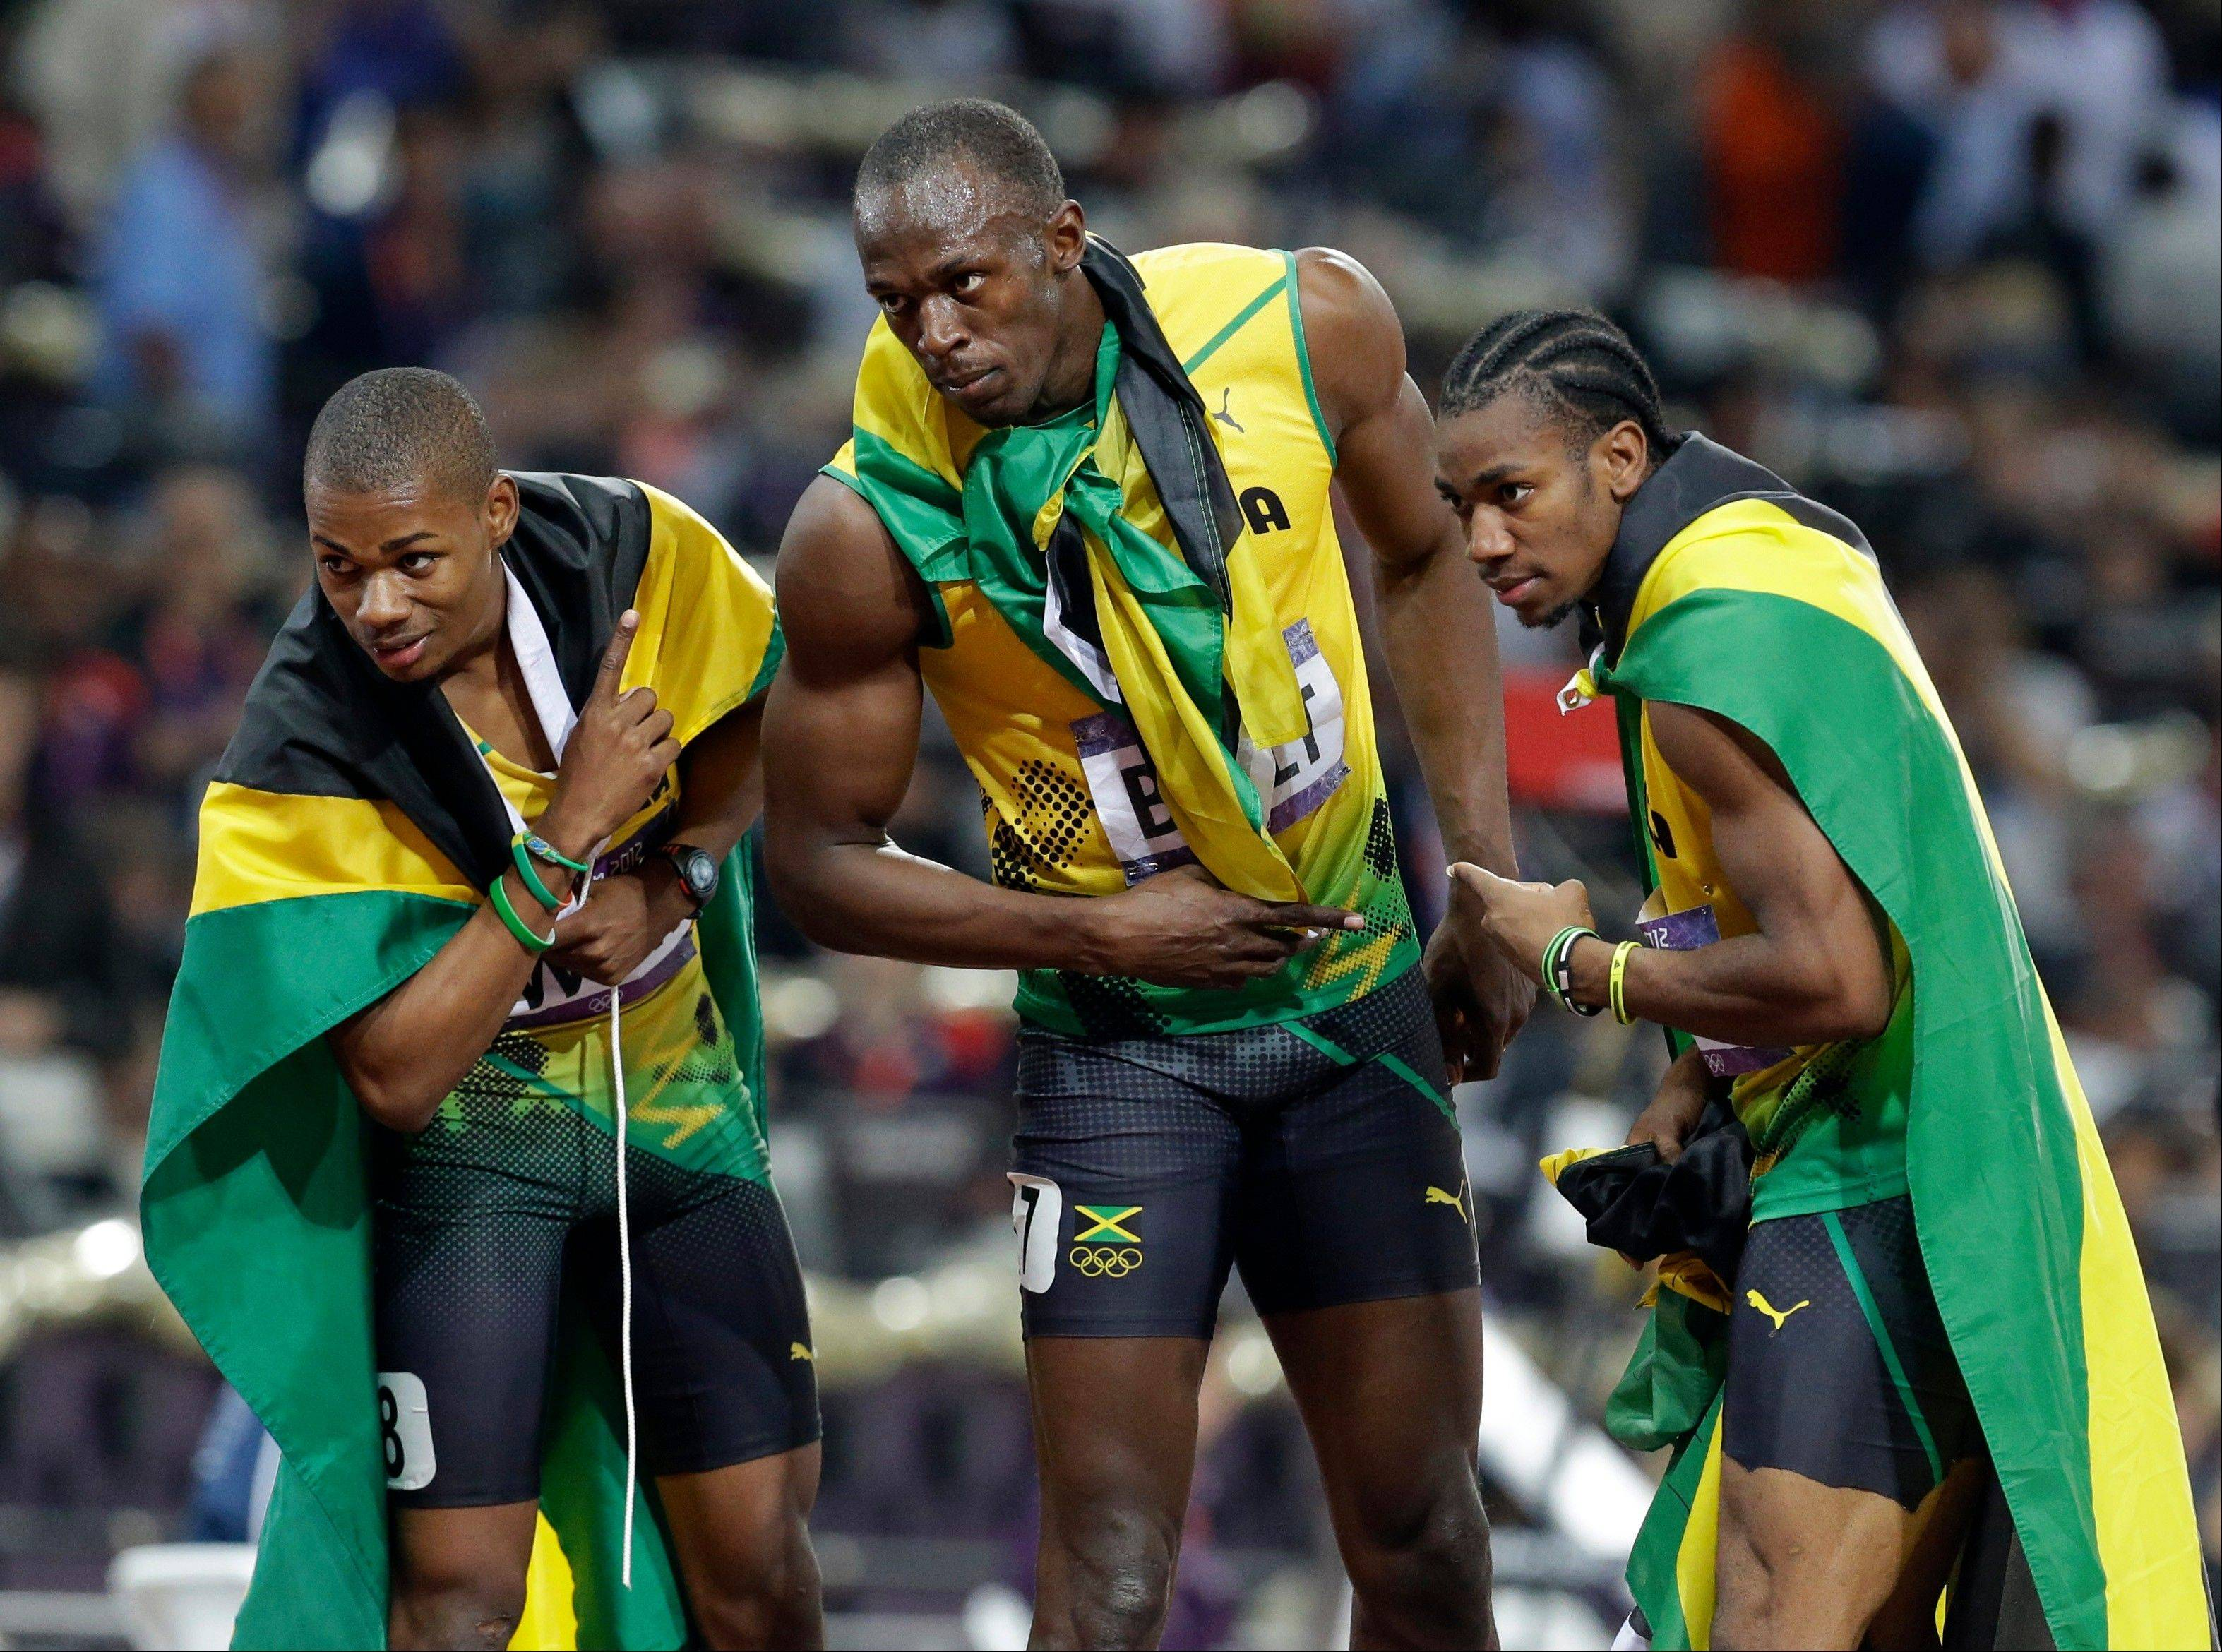 Jamaica's gold medal winner Usain Bolt, center, celebrates with his teammate Warren Weir, left, and Yohan Blake after the men's 200-meter final during the athletics in the Olympic Stadium at the 2012 Summer Olympics, London, Thursday, Aug. 9, 2012.